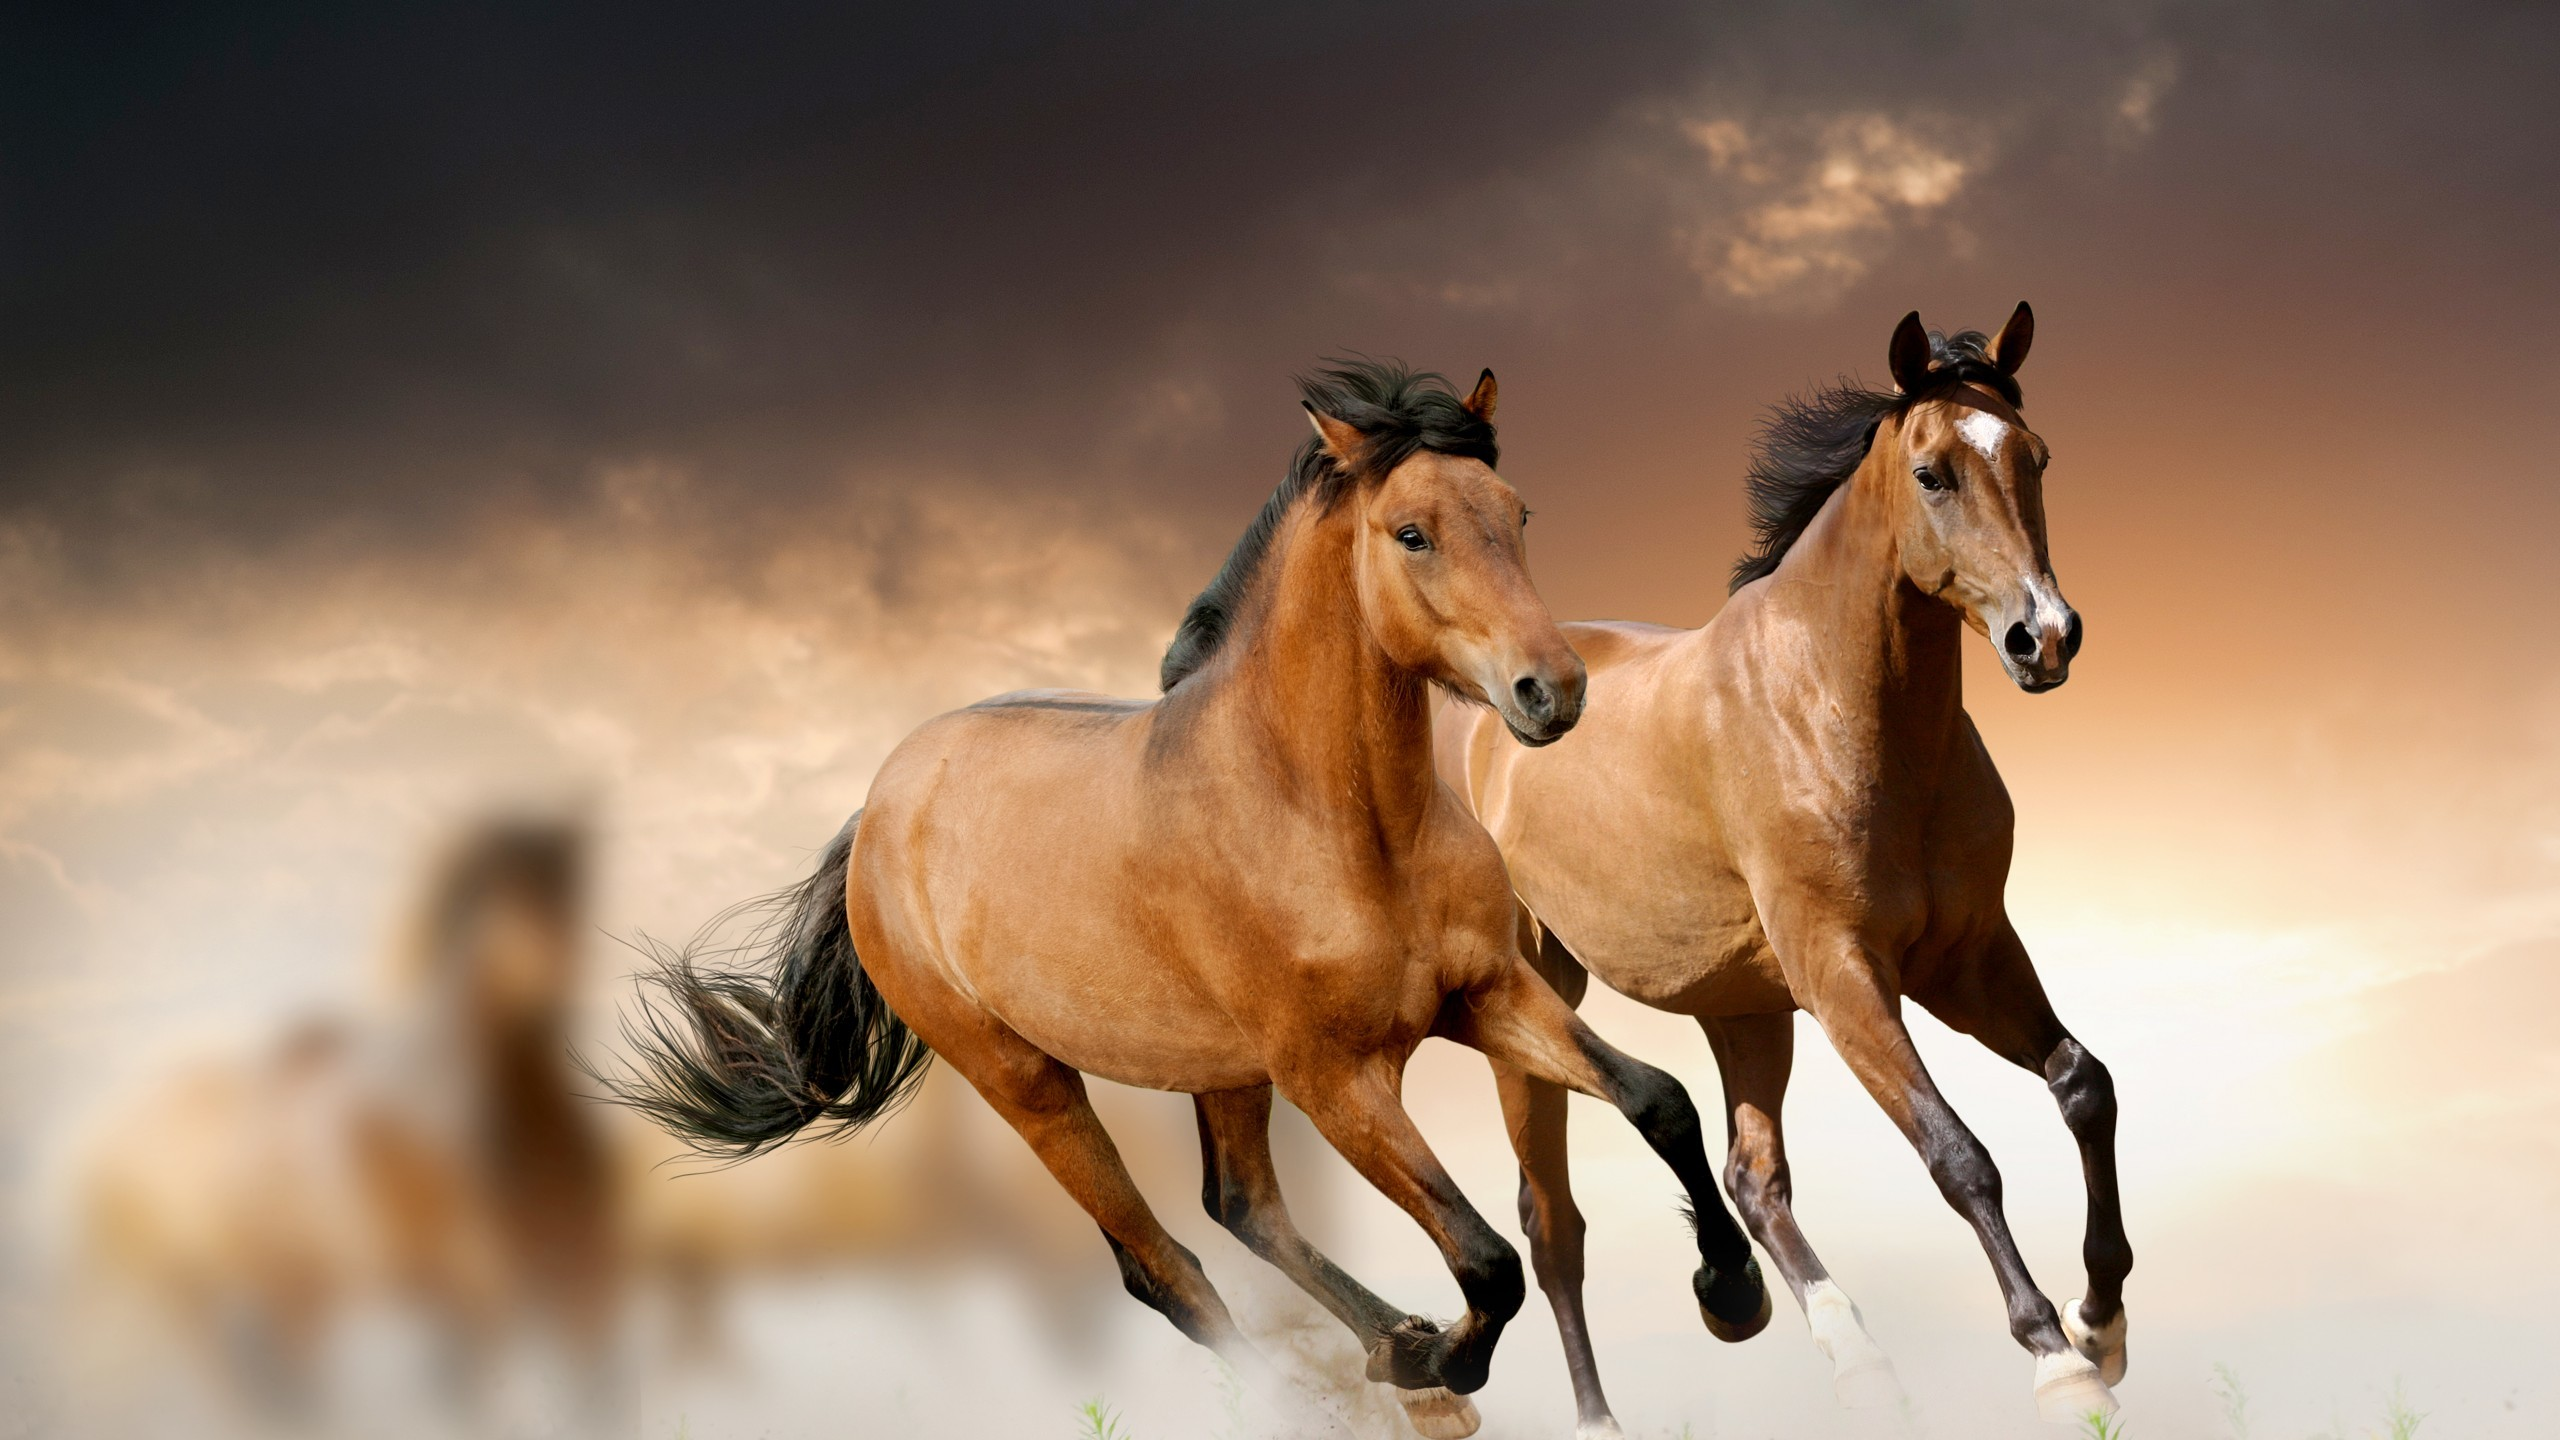 Res: 2560x1440, Running Horse Wallpaper Wallpaper